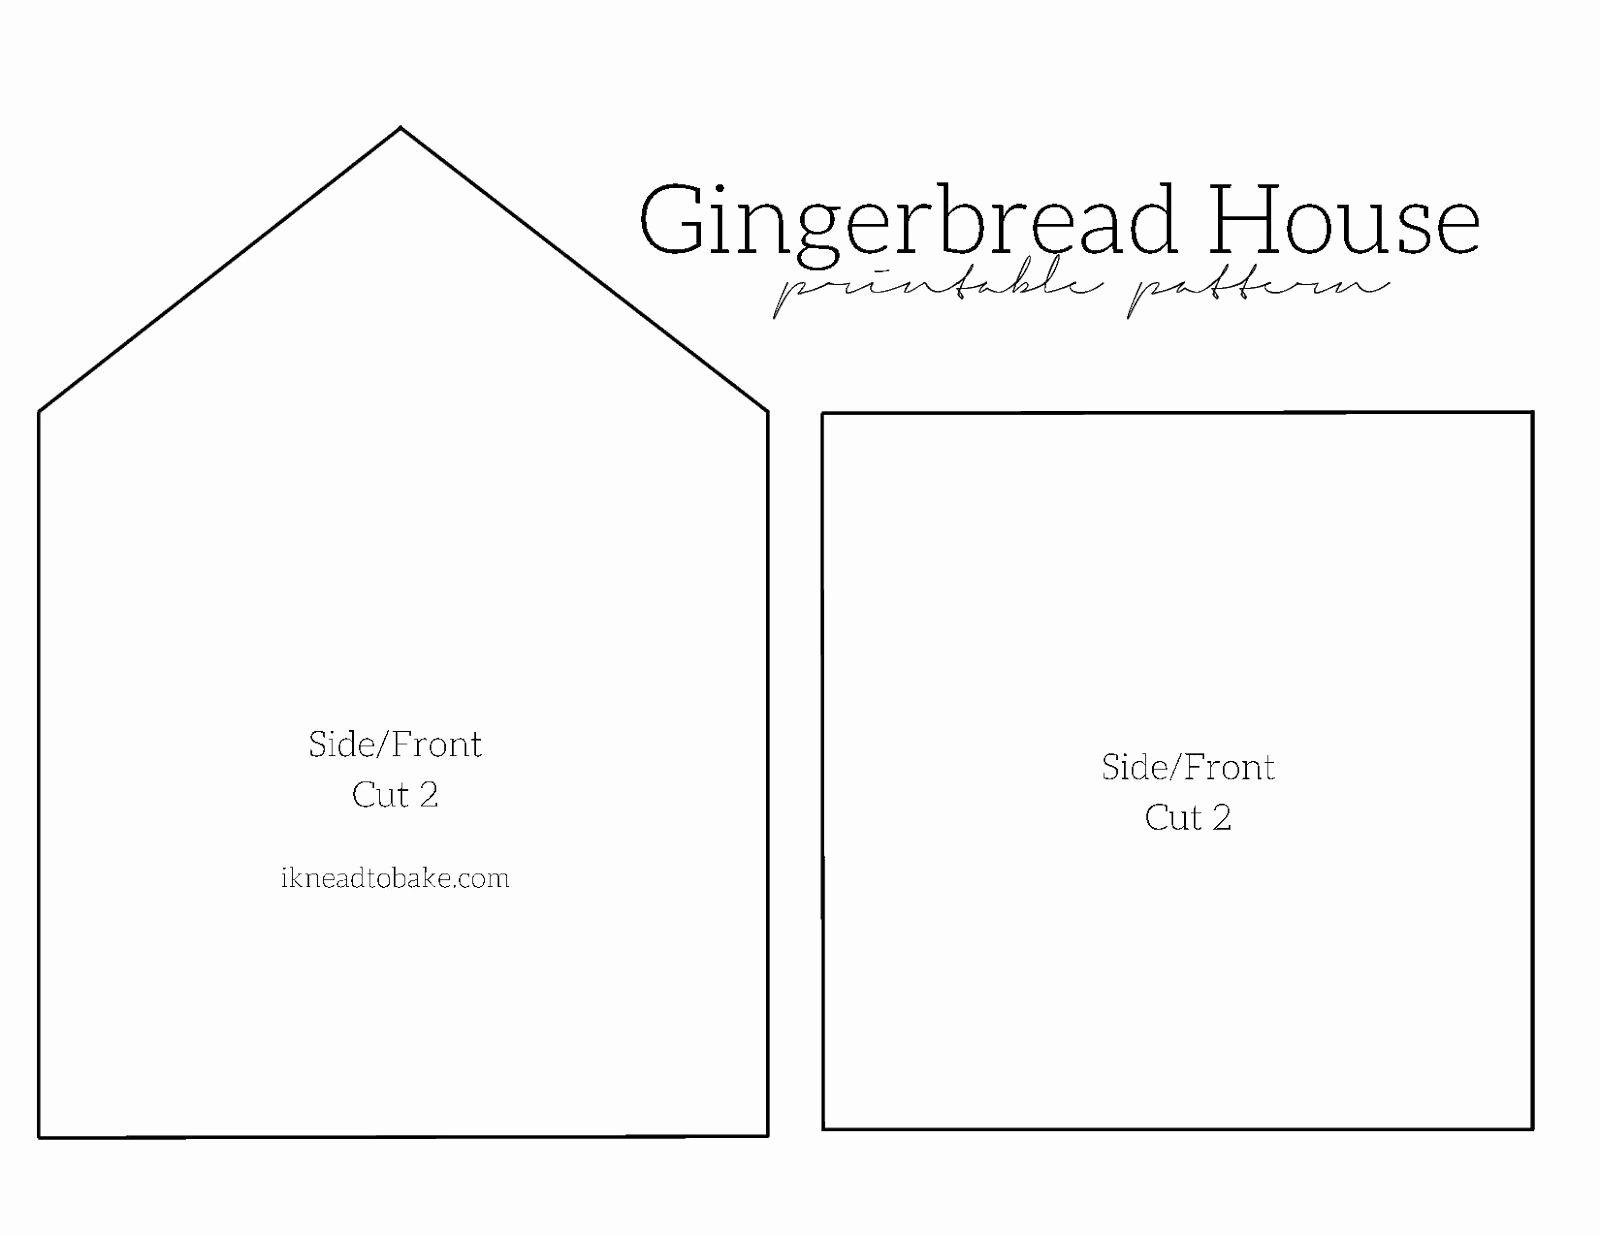 Free Gingerbread House Patterns Inspirational Gingerbread House Free Printable Pattern Freeprintable